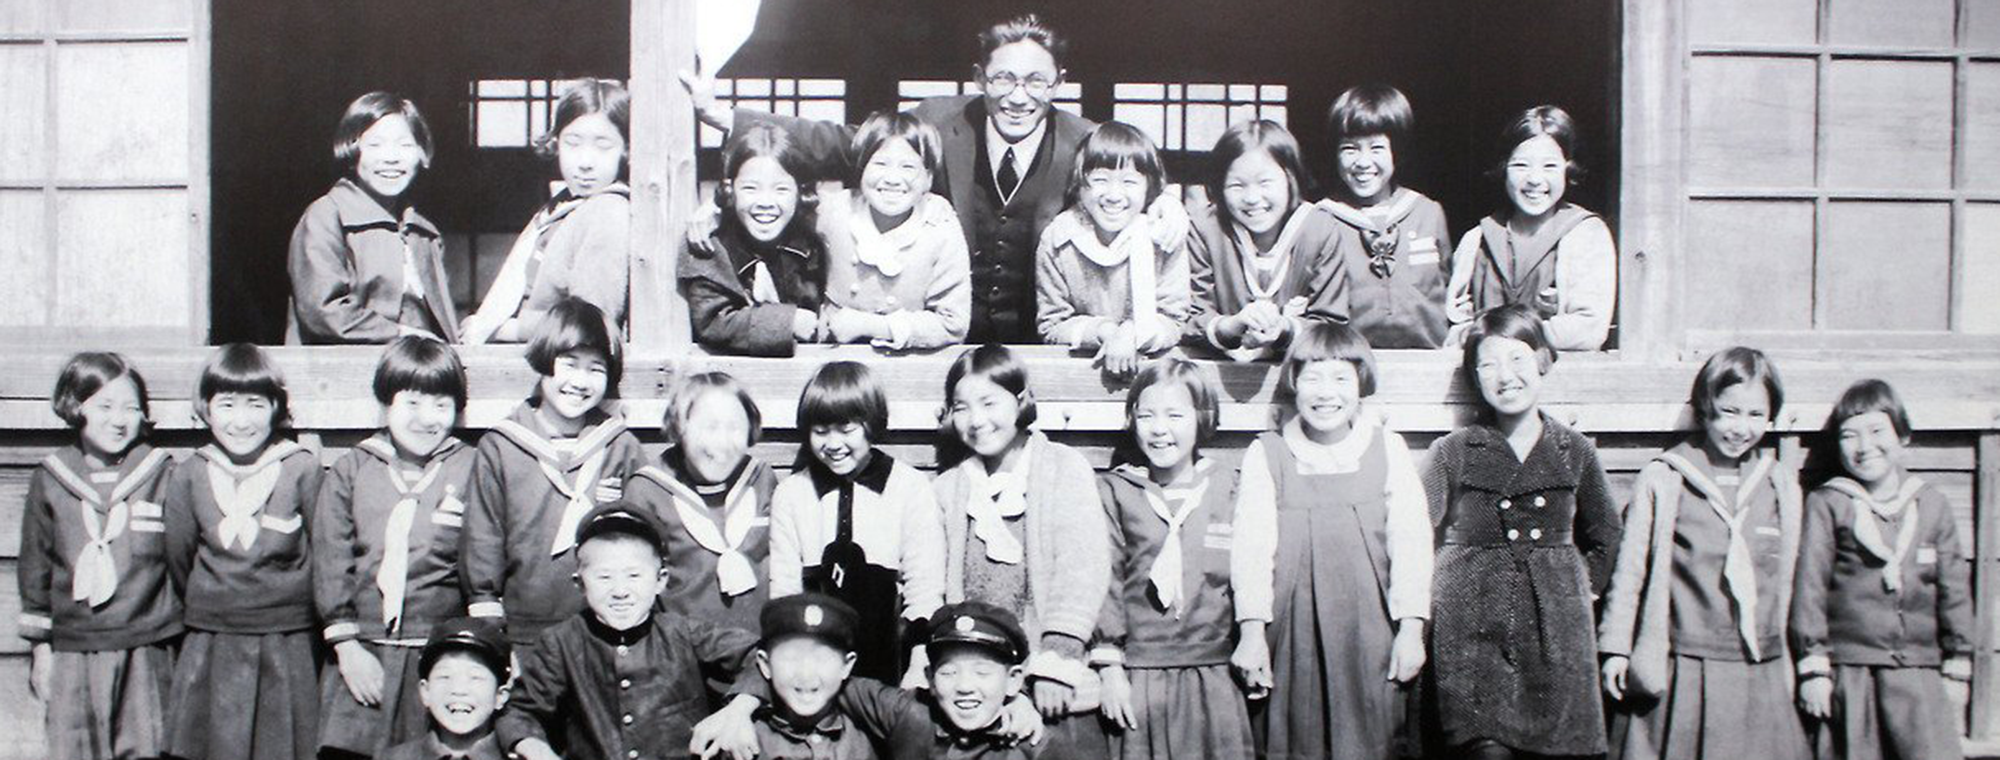 Teacher and students of the Noboricho Elementary School, located 0.7 mi / 1.1 km from ground zero